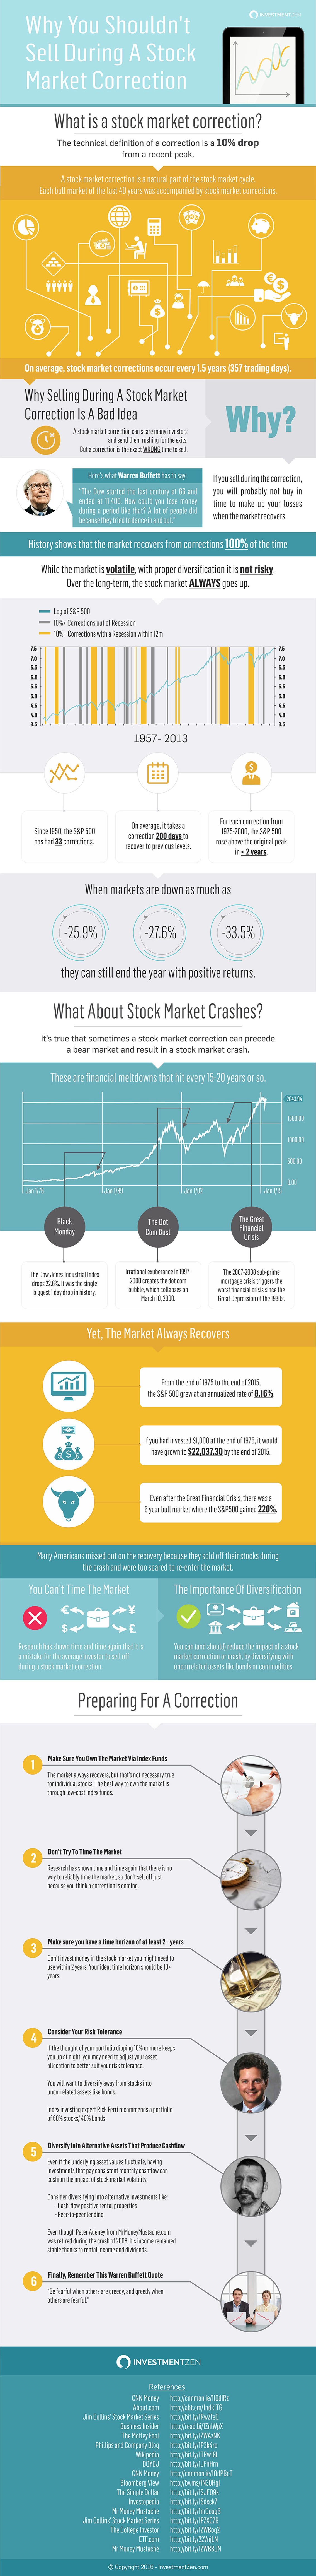 Why You Should not Sell During a Stock Market Correction Infographic